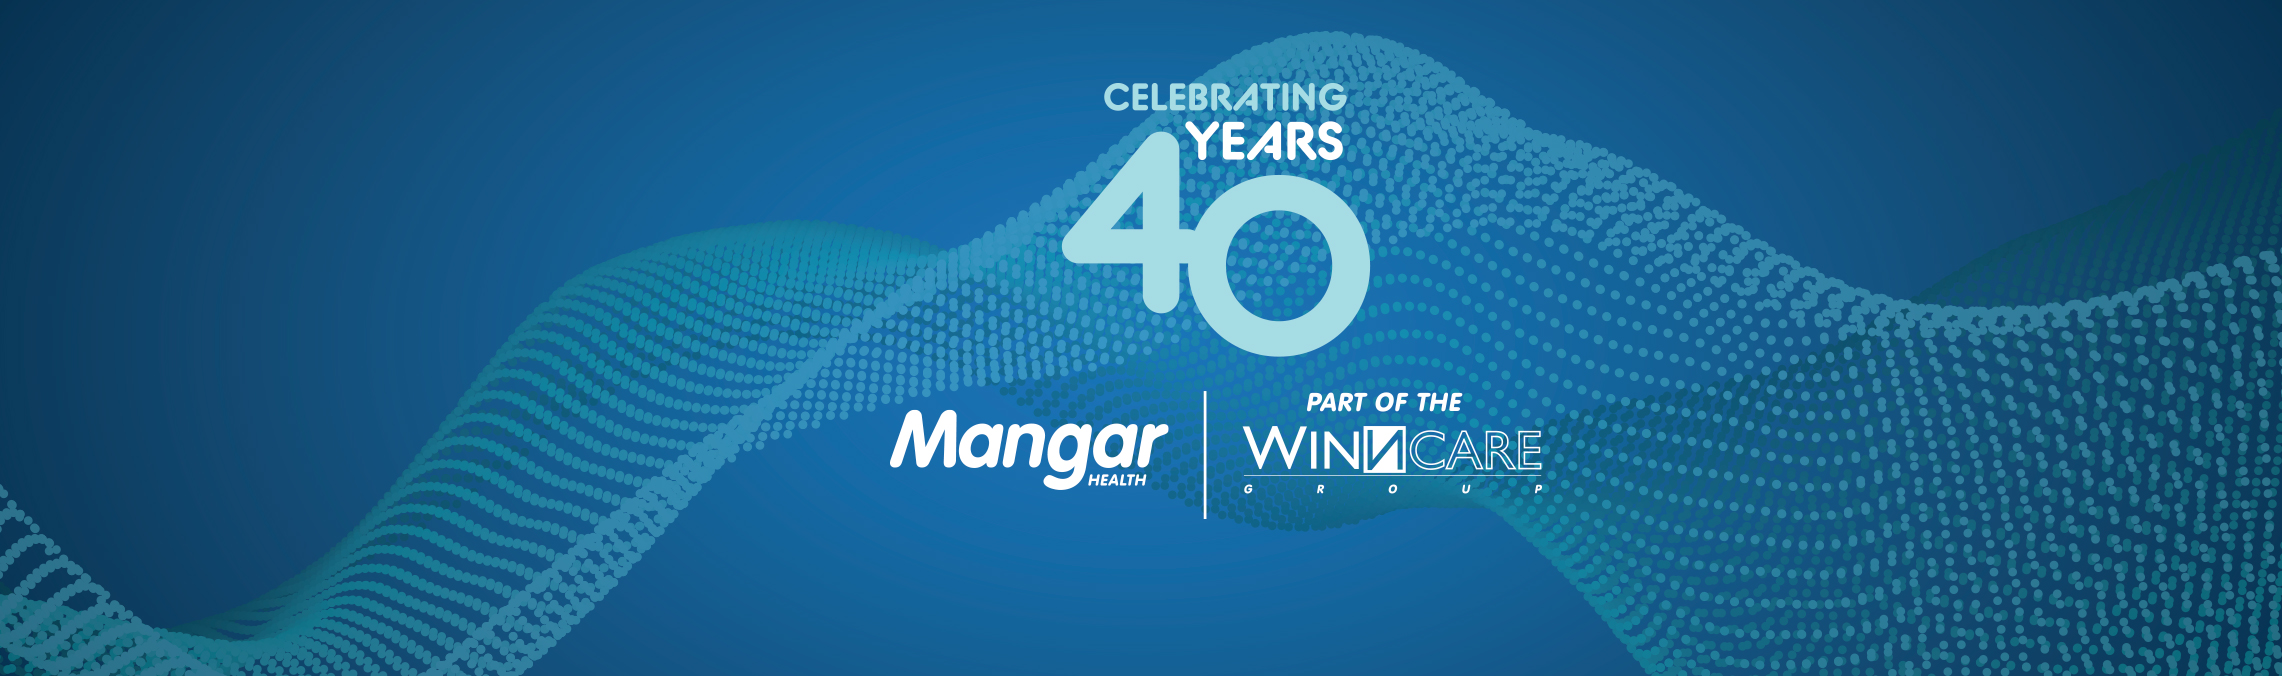 2021 is the year Mangar Health celebrate their 40 years! Throughout the 40 years more than 40 products have been designed and manufactured.